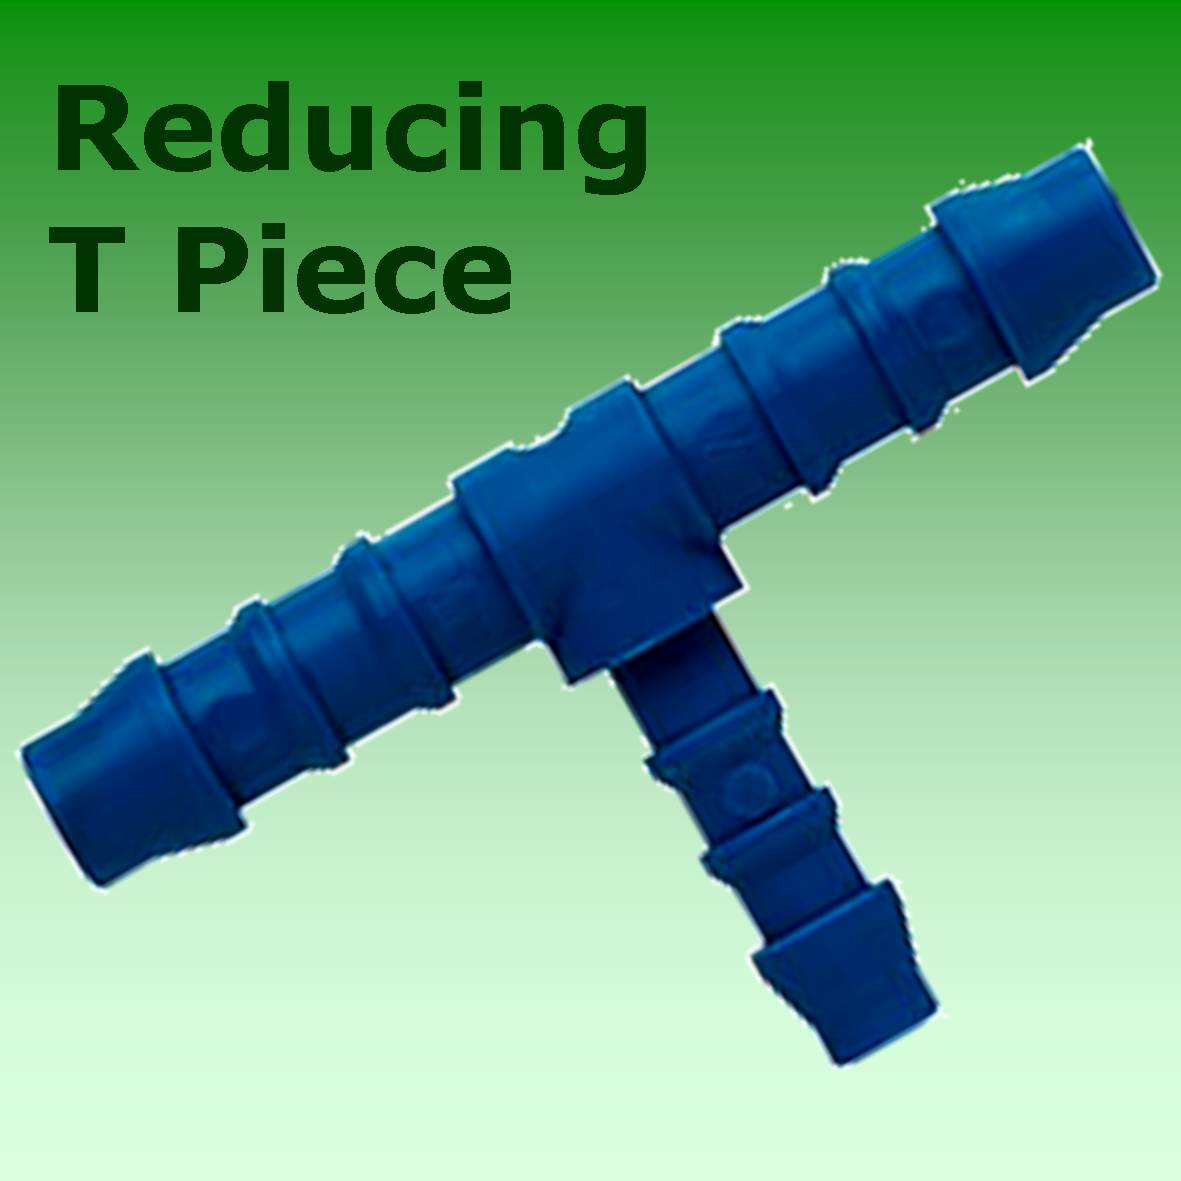 8mm 6mm 8mm Reducing Nylon T Piece Hose Joiner Connector